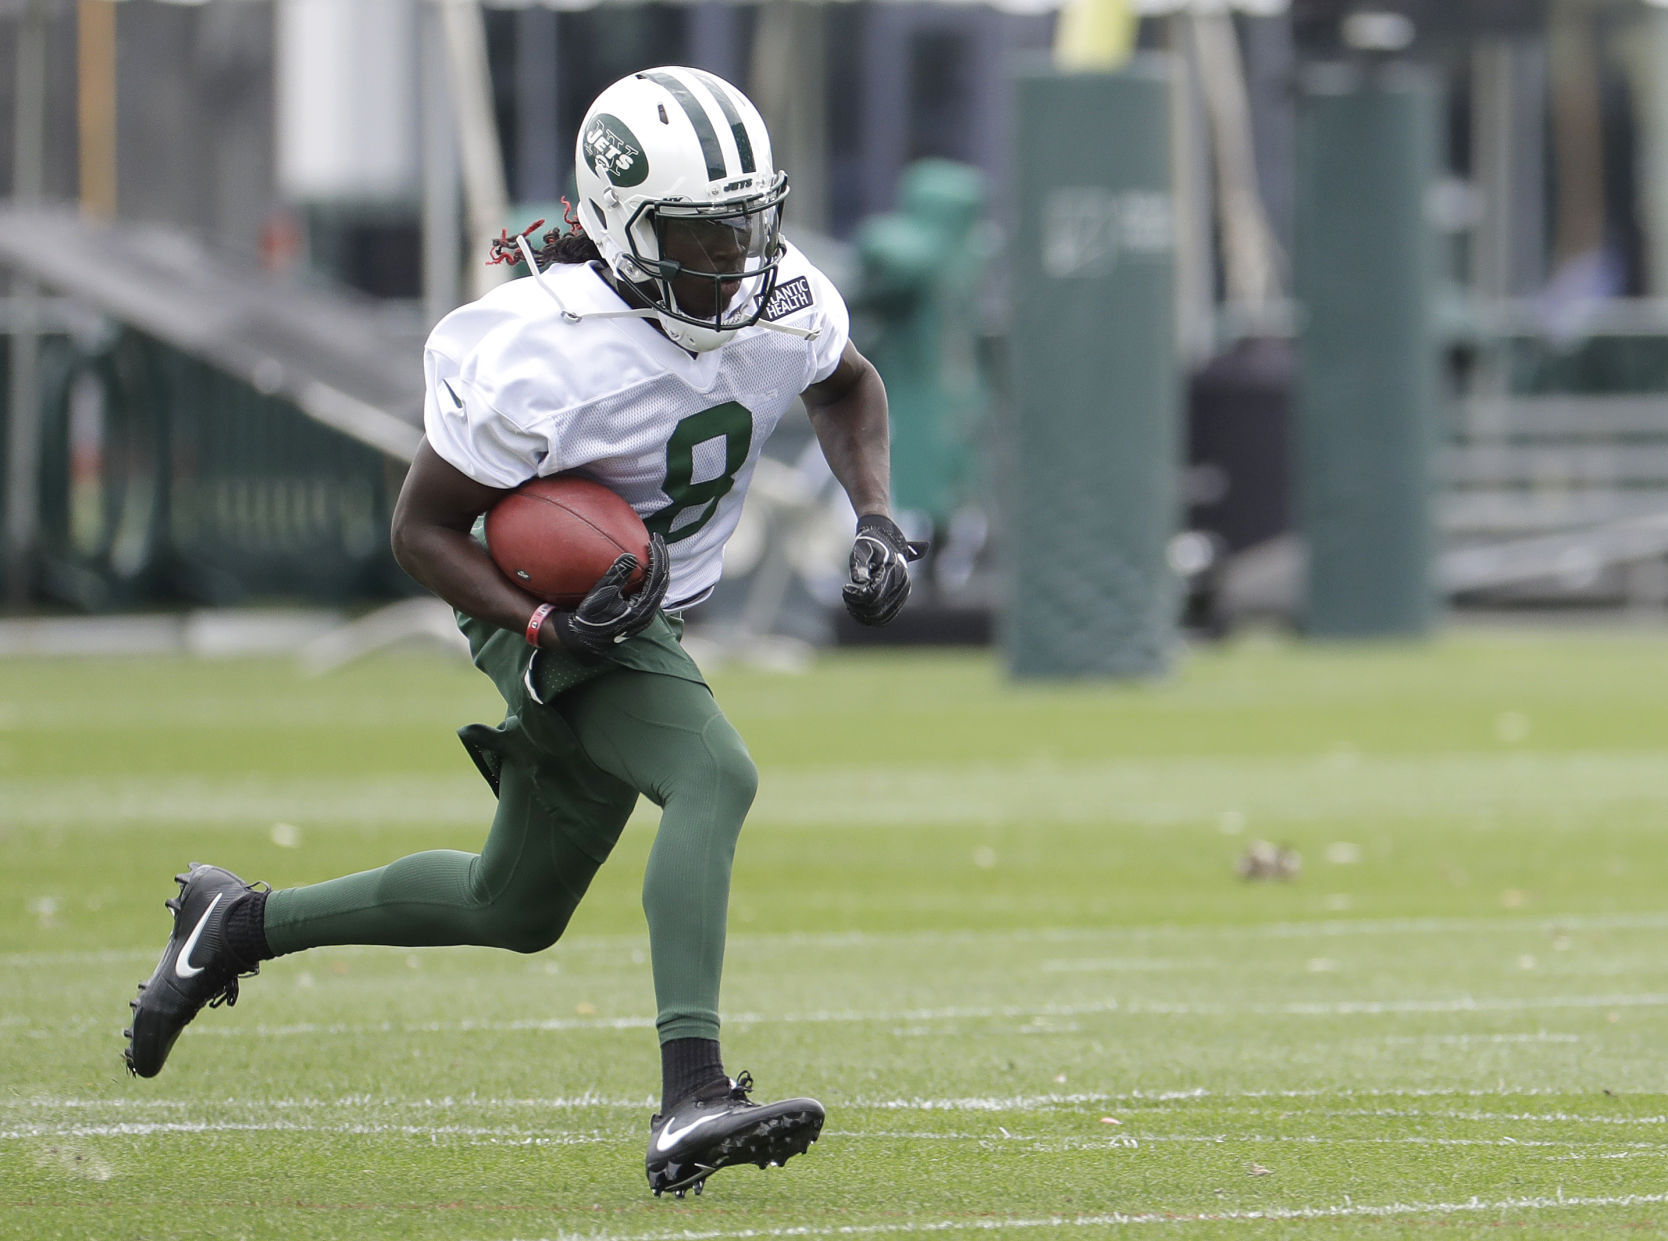 Lucky Whitehead Ready to Help Jets